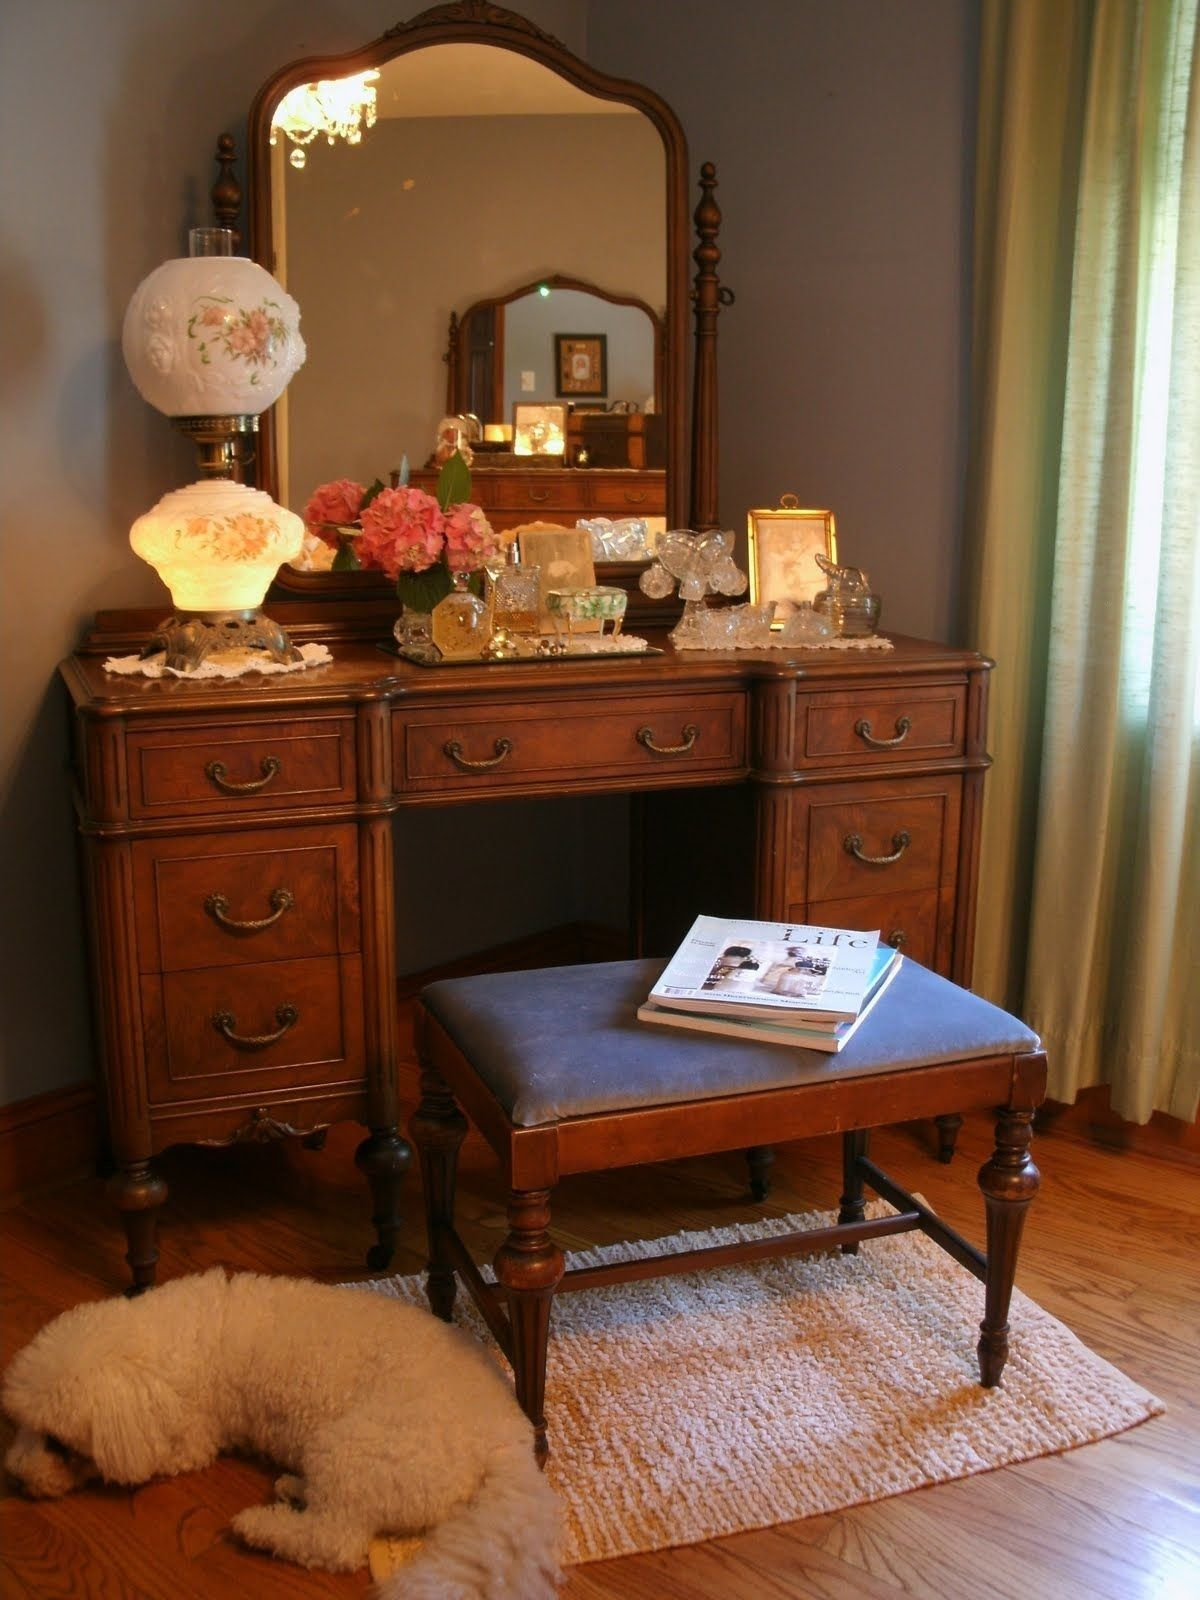 Antique Furniture. Searching for original collectible